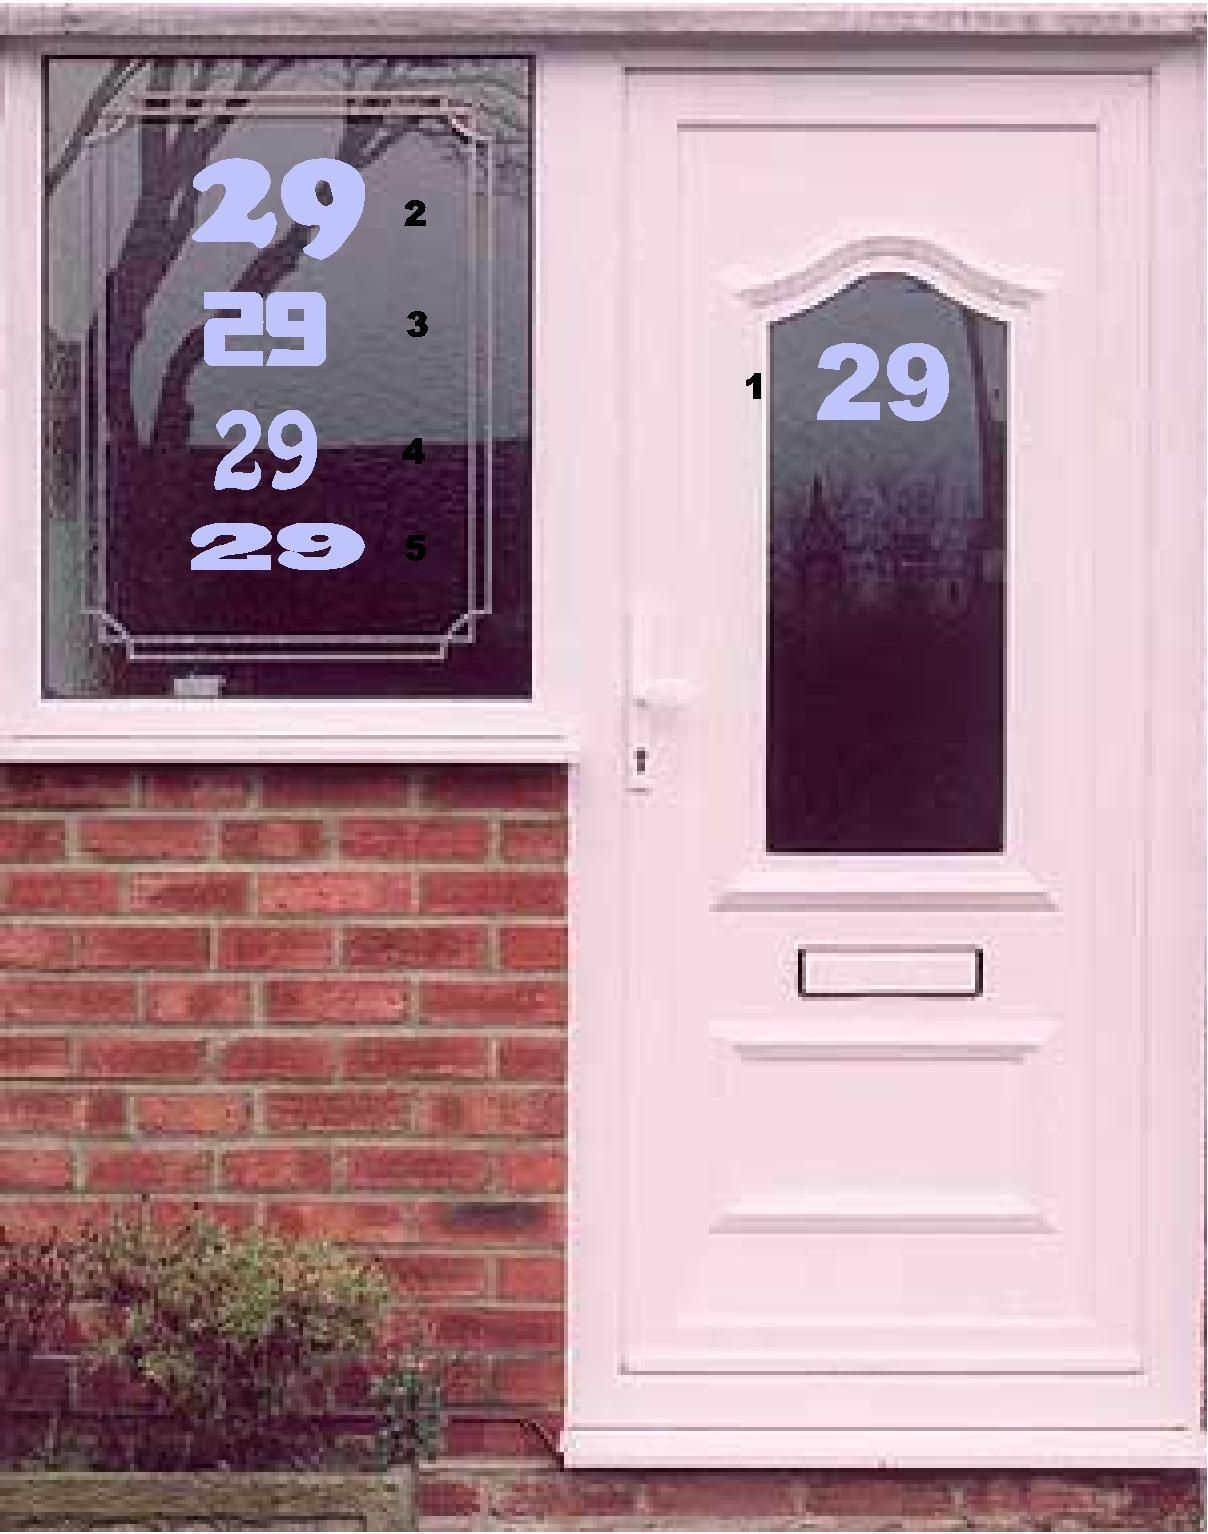 Vinyl Etch Etched Frosted Glass Effect Door Numbers Self Adhesive